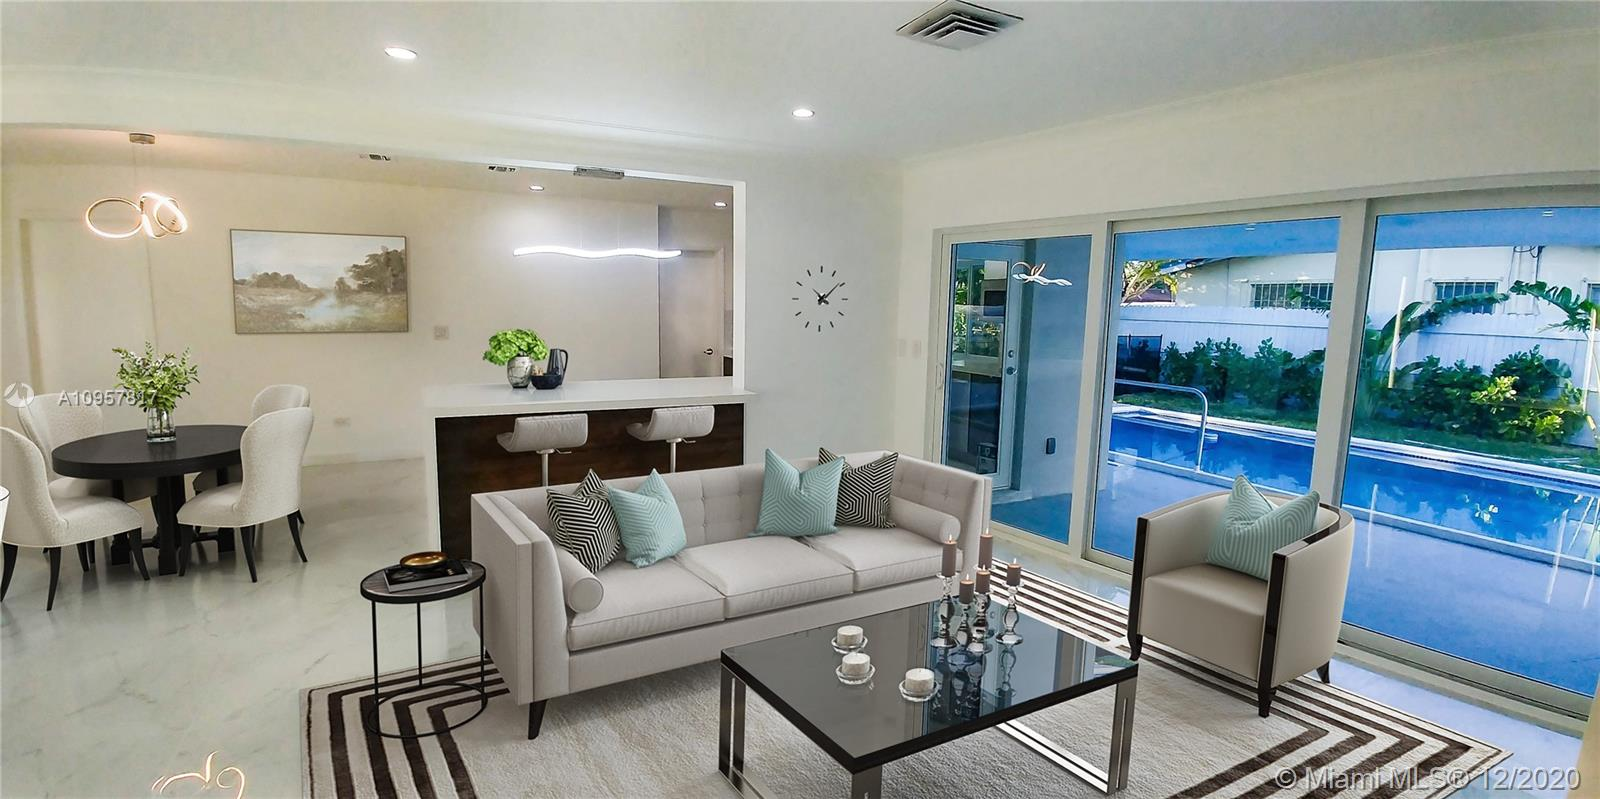 Details for 4011 5th Ter, Miami, FL 33134